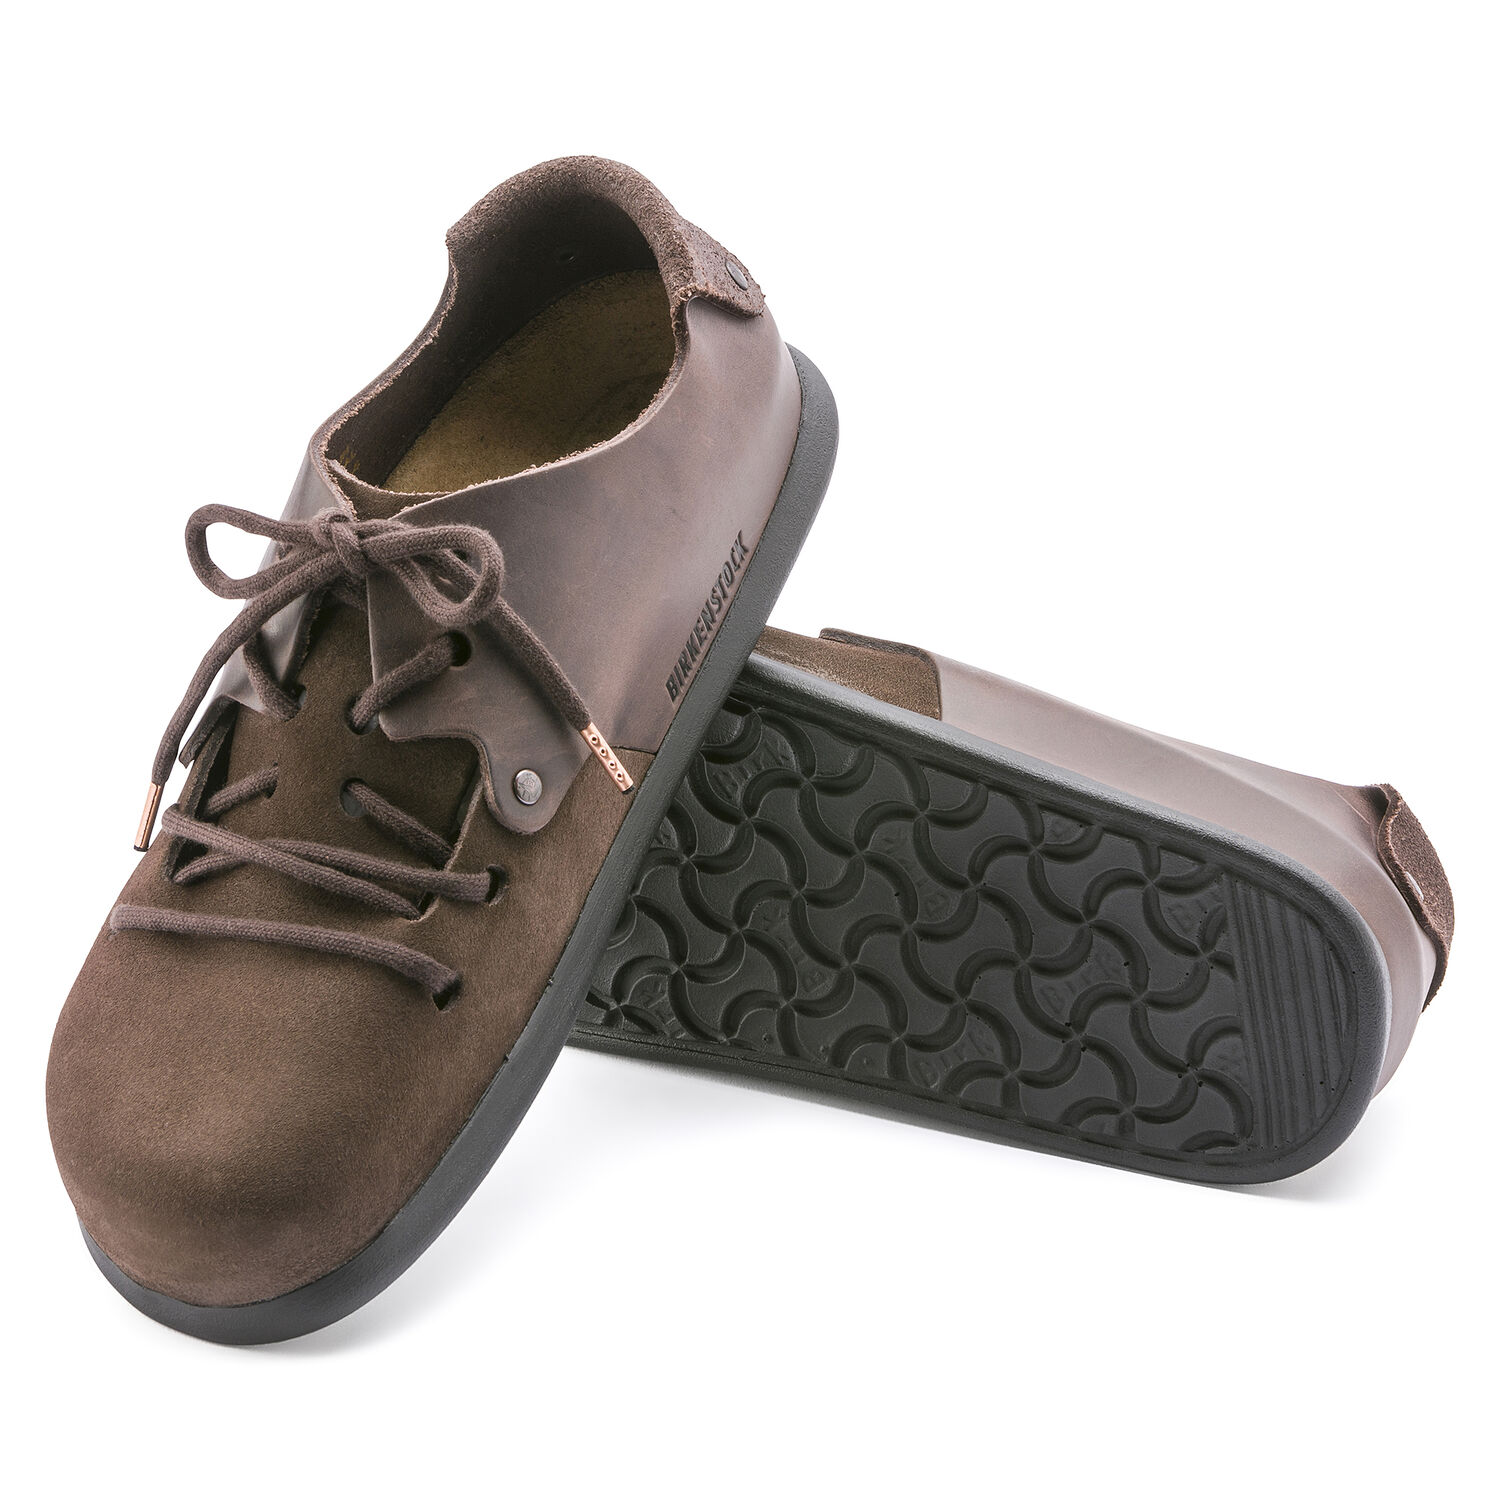 Montana Oiled Leather/Suede Leather